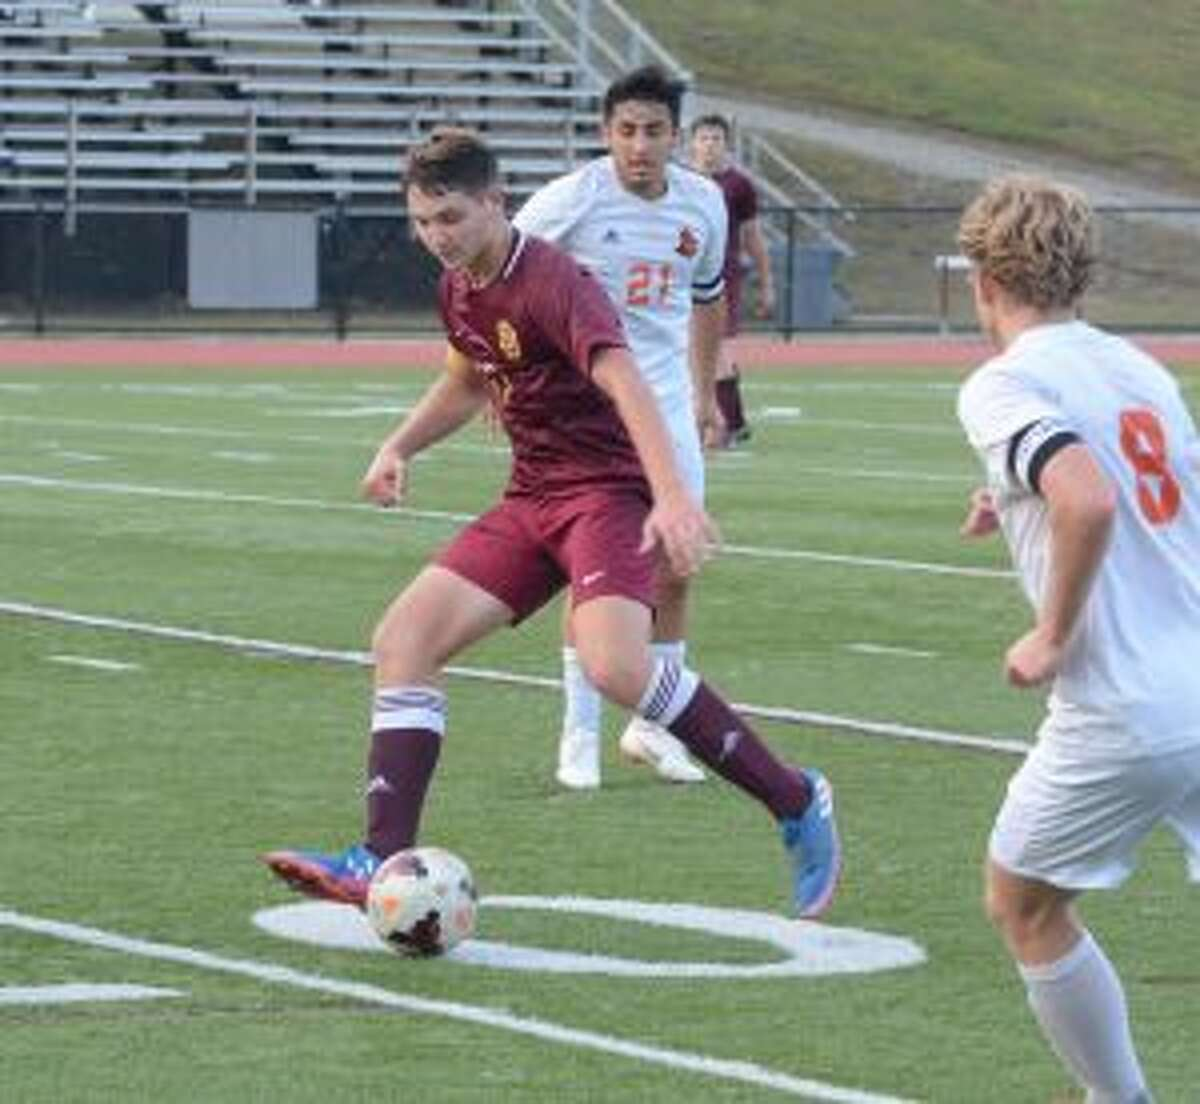 The Cadets' Sawyer Meehan works the ball past a defender. - Andy Hutchison photo